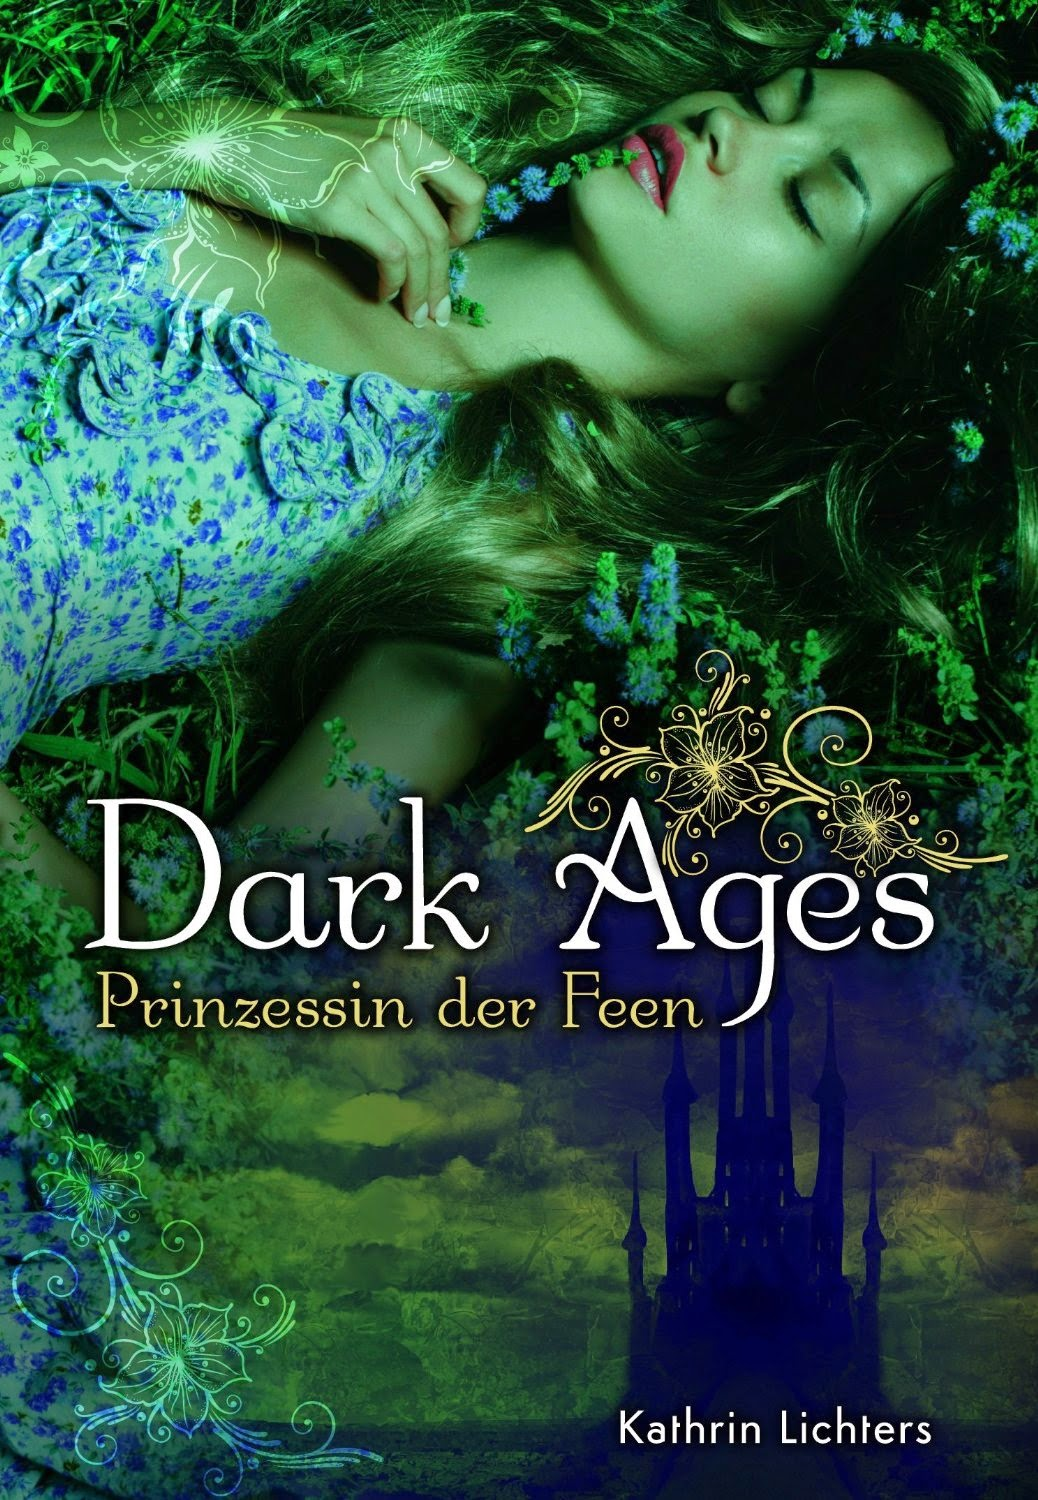 http://www.amazon.de/Dark-Ages-Prinzessin-Kathrin-Lichters-ebook/dp/B00N9DCMG0/ref=sr_1_1?s=books&ie=UTF8&qid=1430682717&sr=1-1&keywords=dark+ages+prinzessin+der+feen